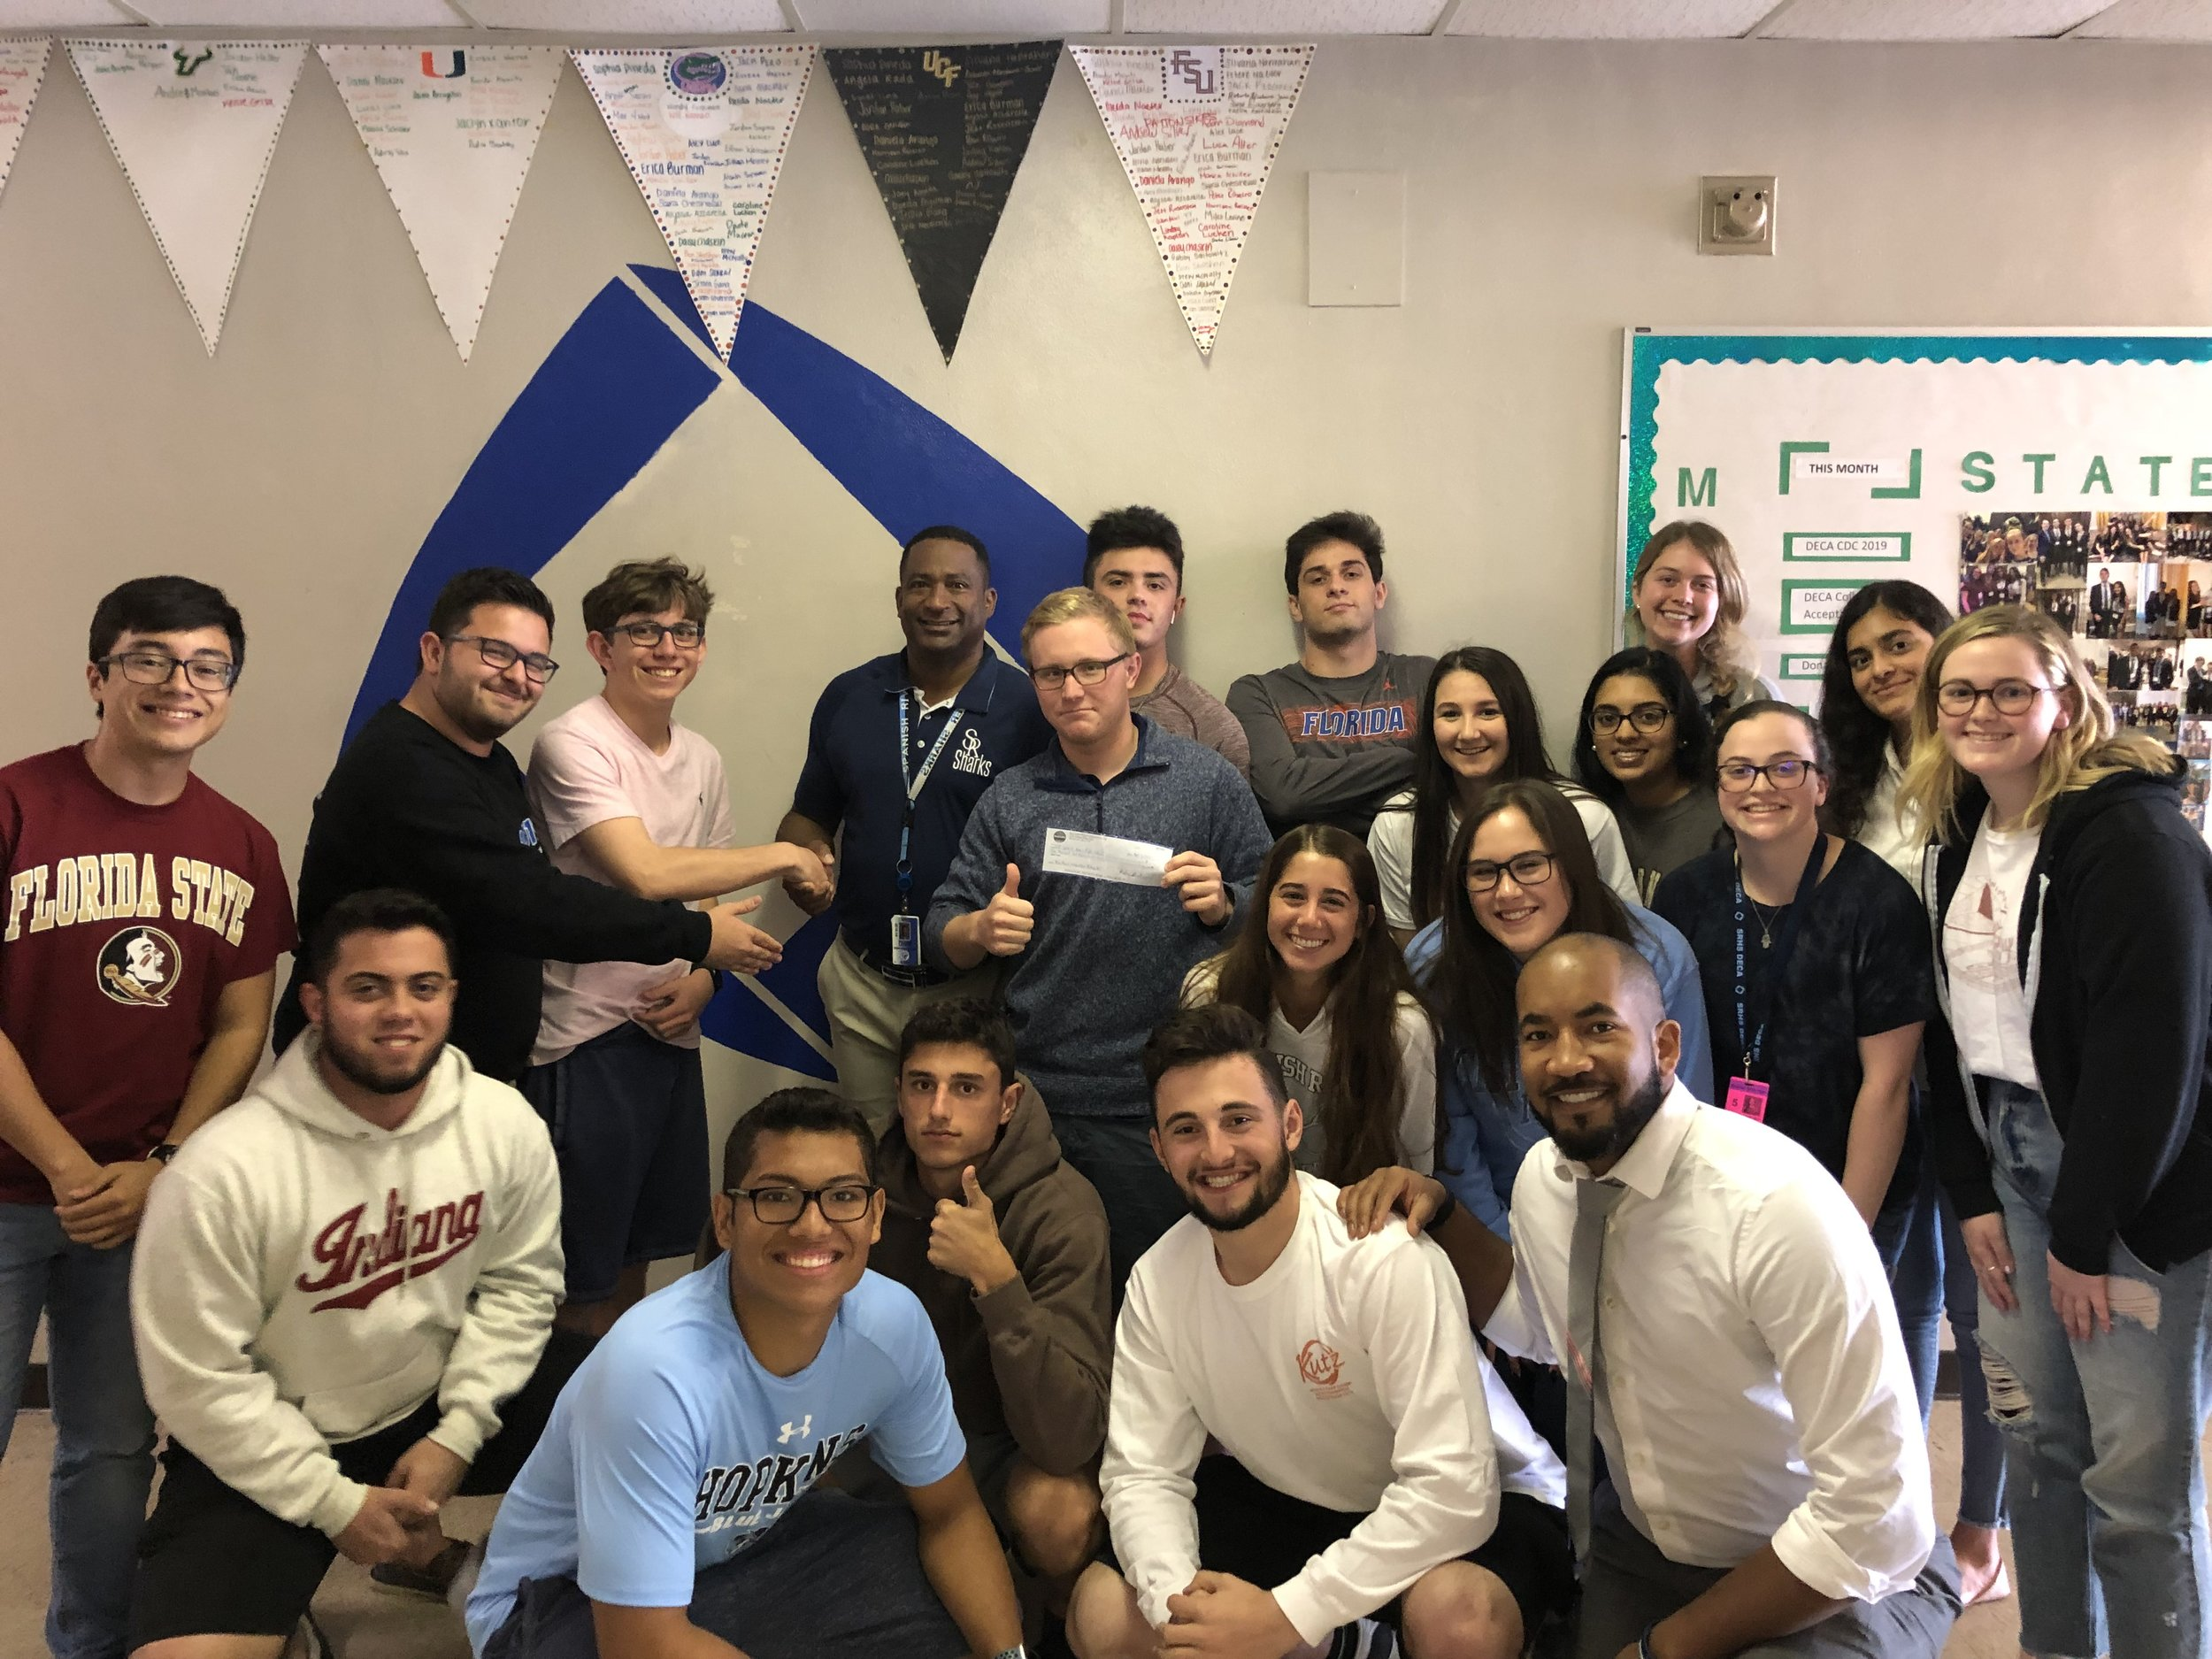 Spanish River High School - Alain Bazile and his students wit the $1,000 check from the Blue Ocean Student Entrepreneur Pitch Competition. Click the image to read the interview with AlainBoca Raton, Florida